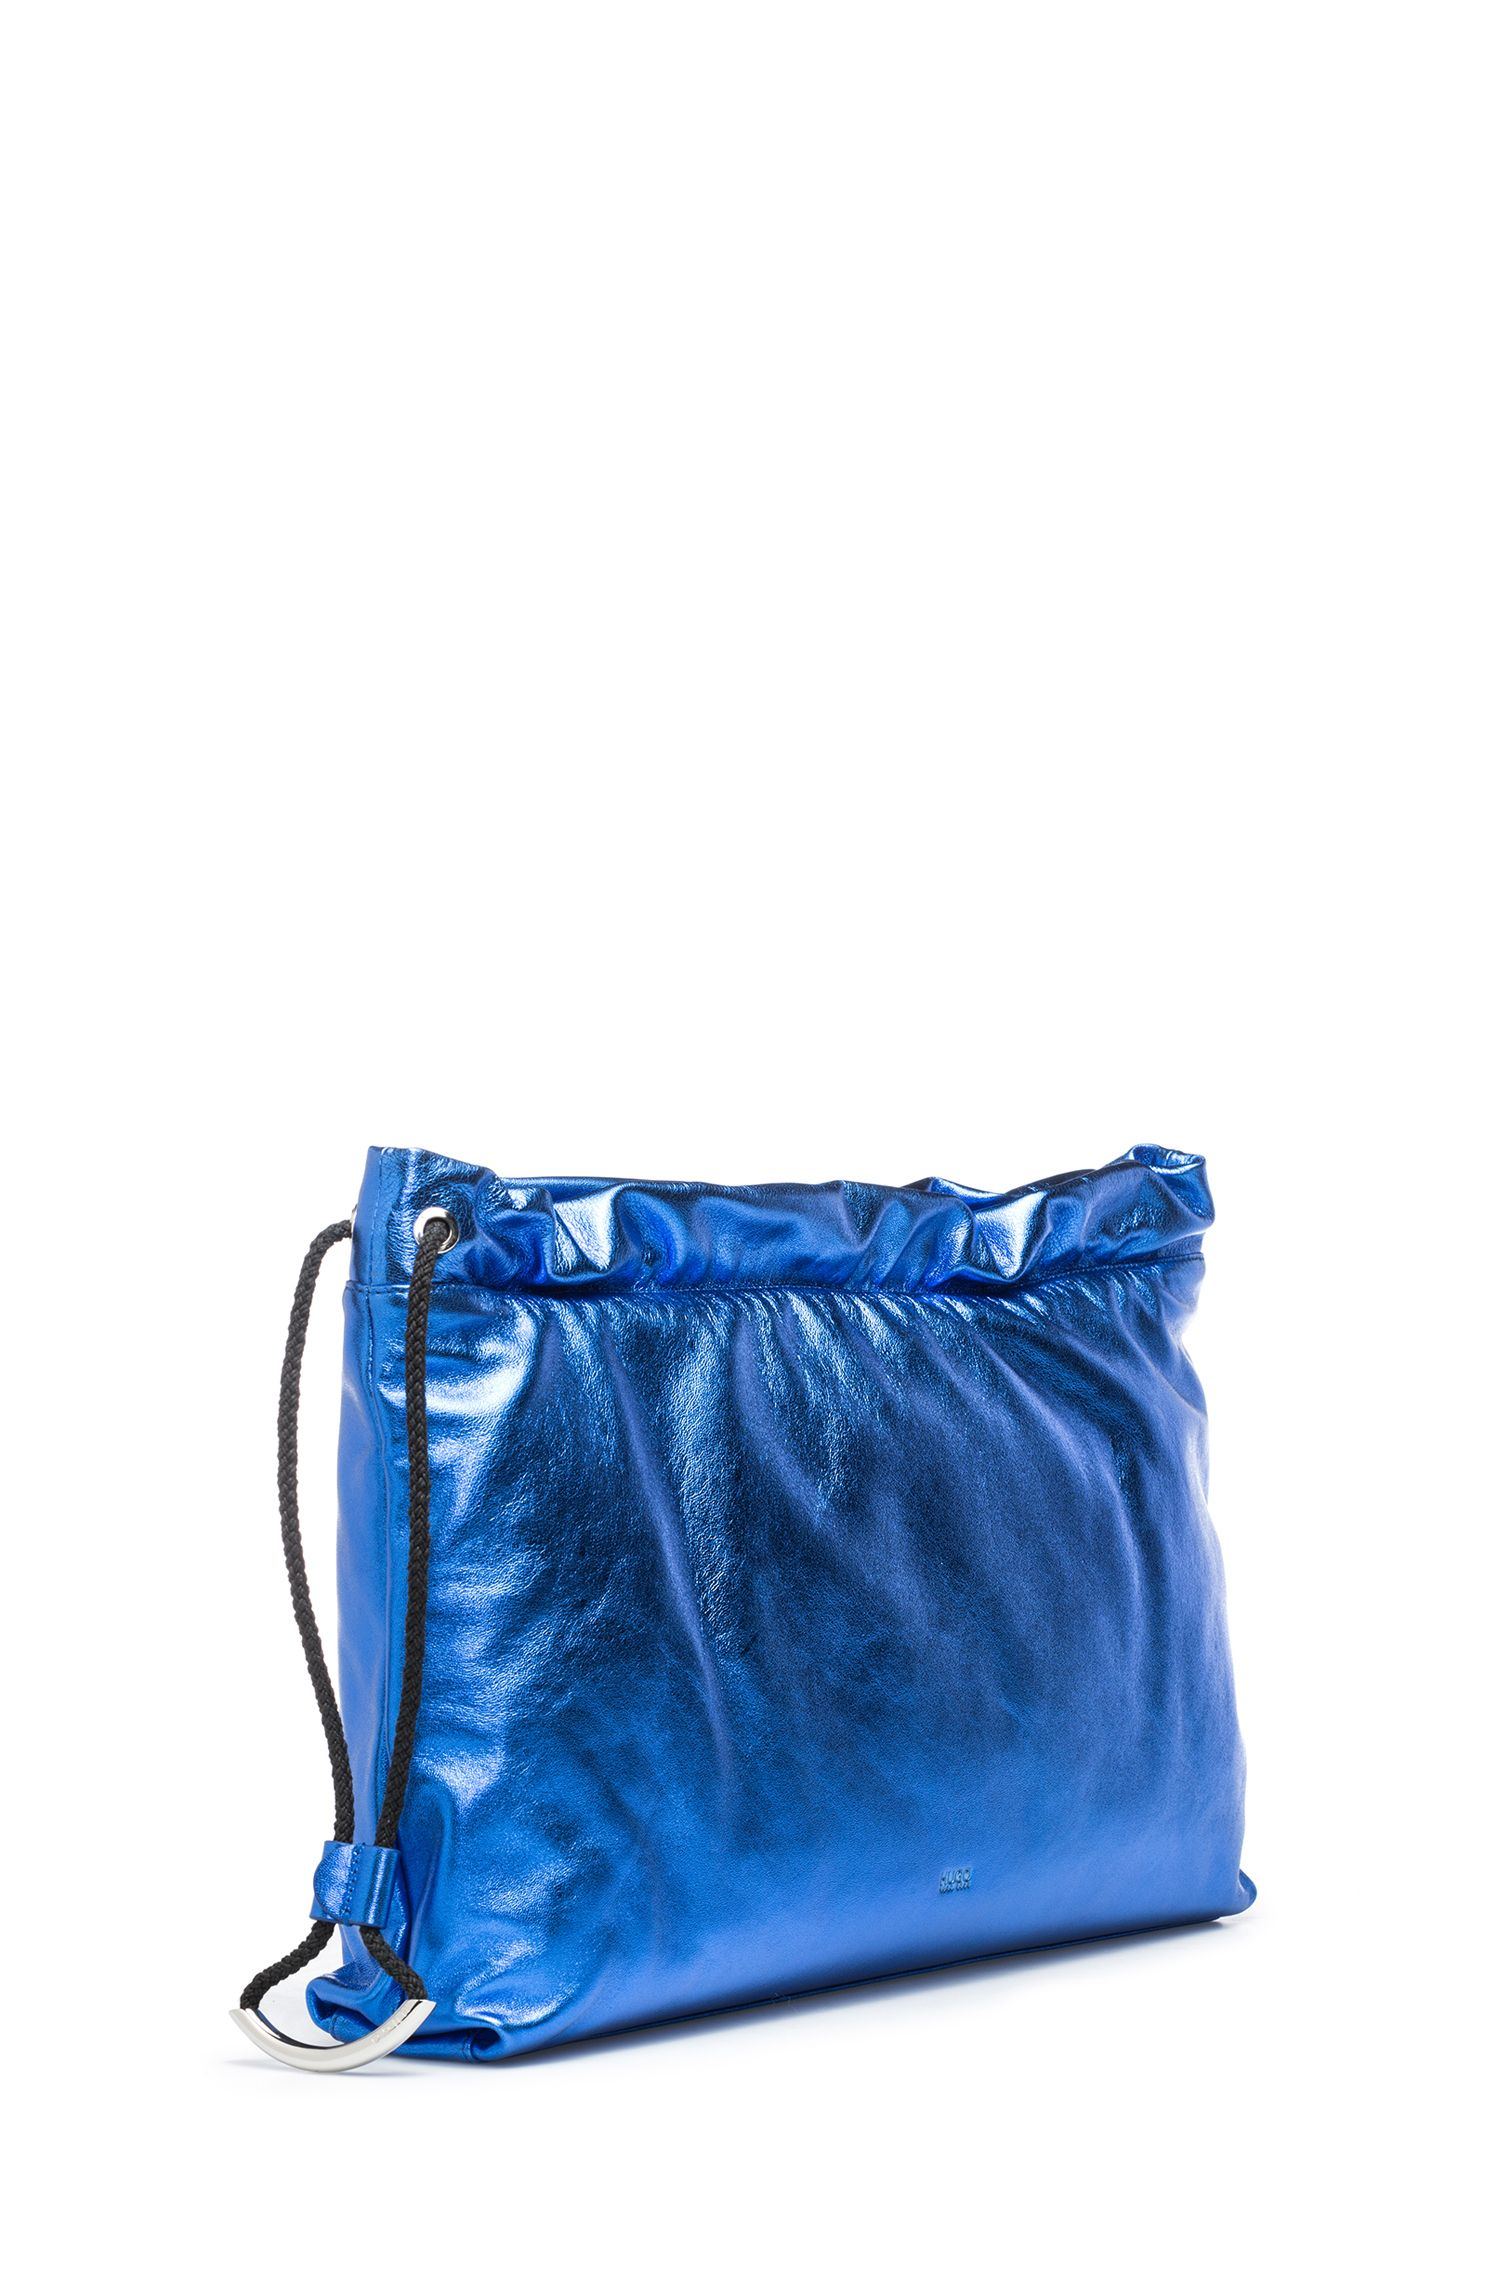 Leather clutch bag with drawstring